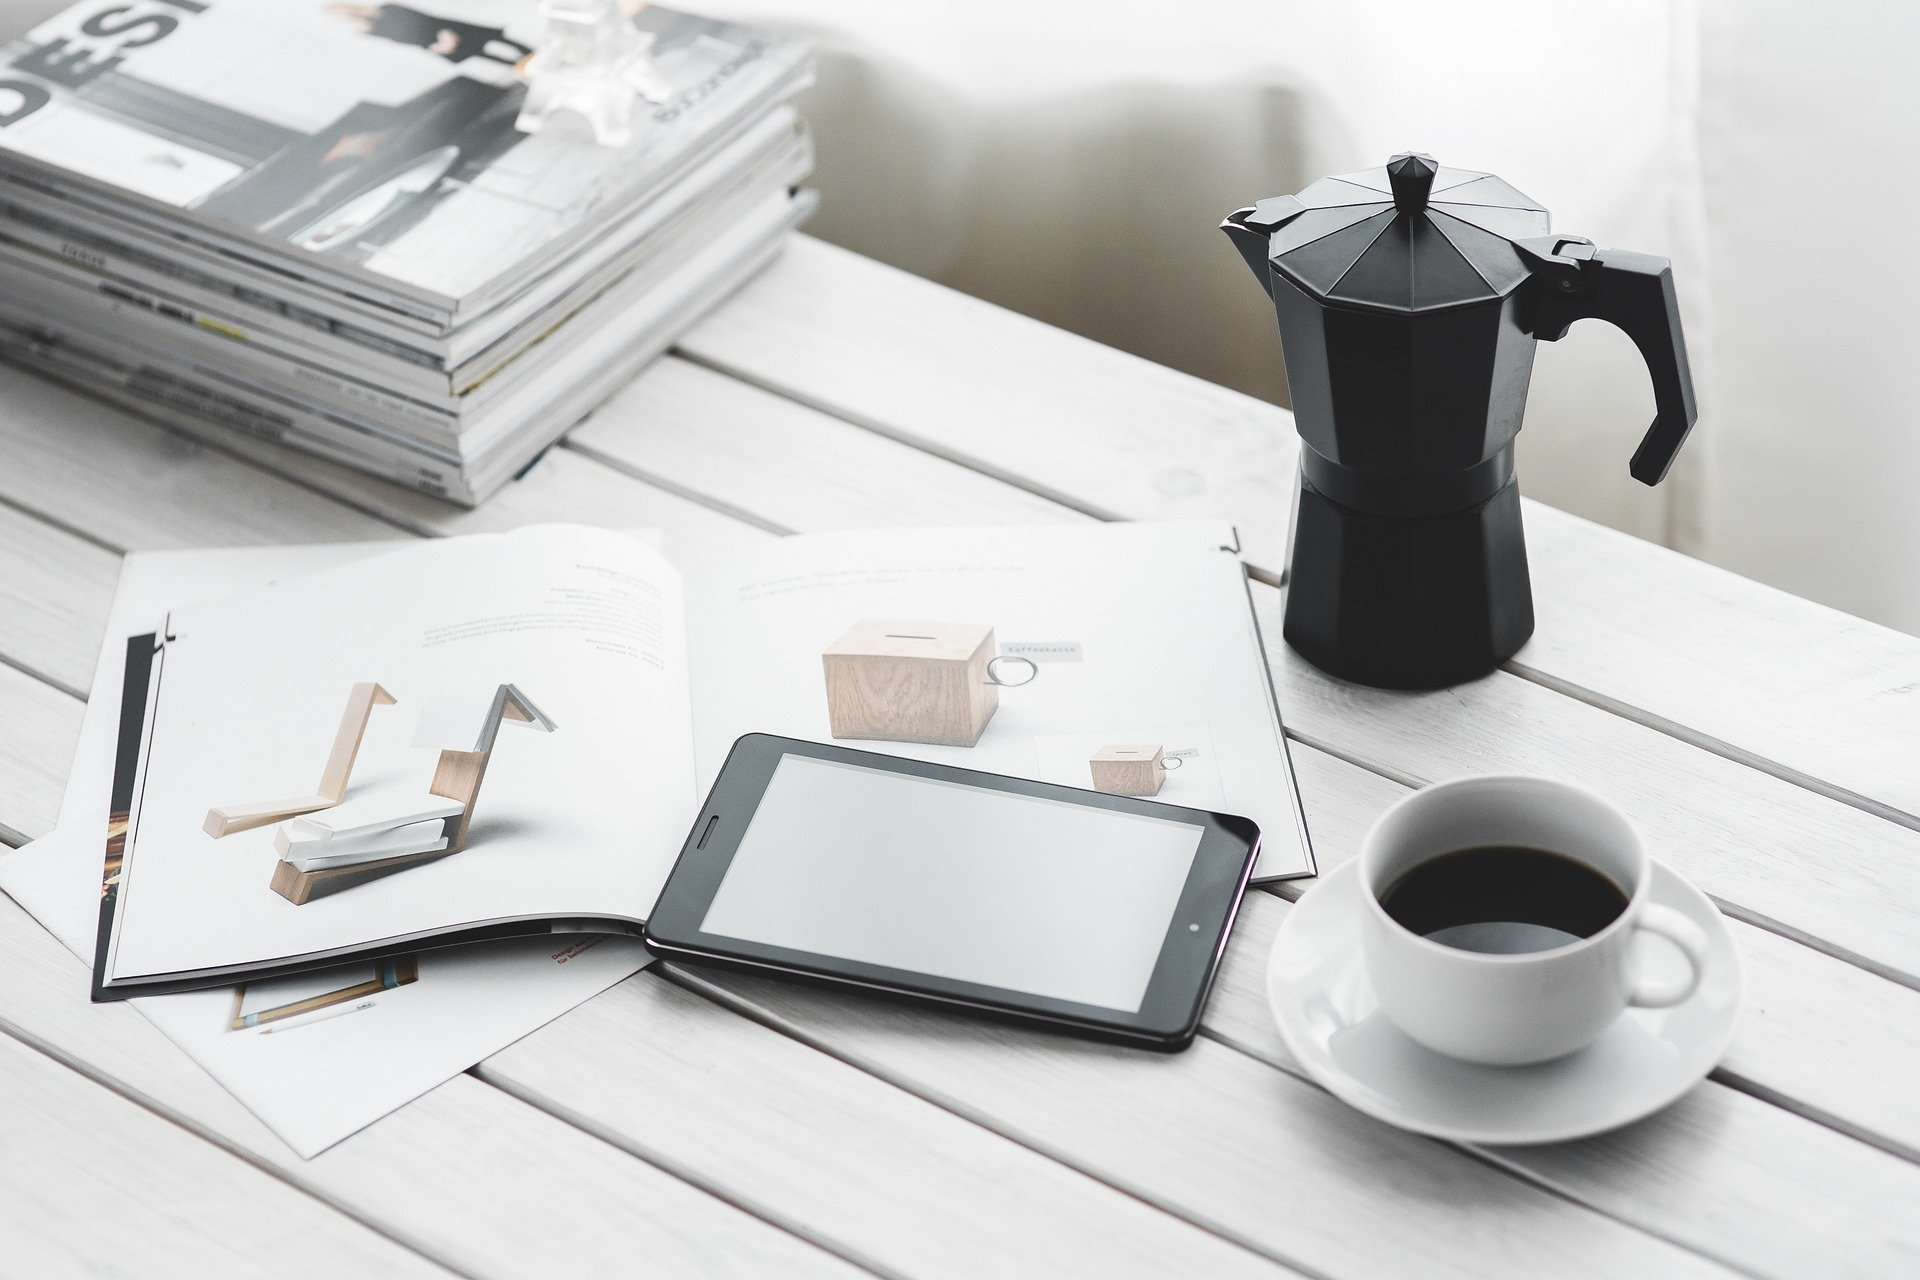 Cup of black coffee on a desk.